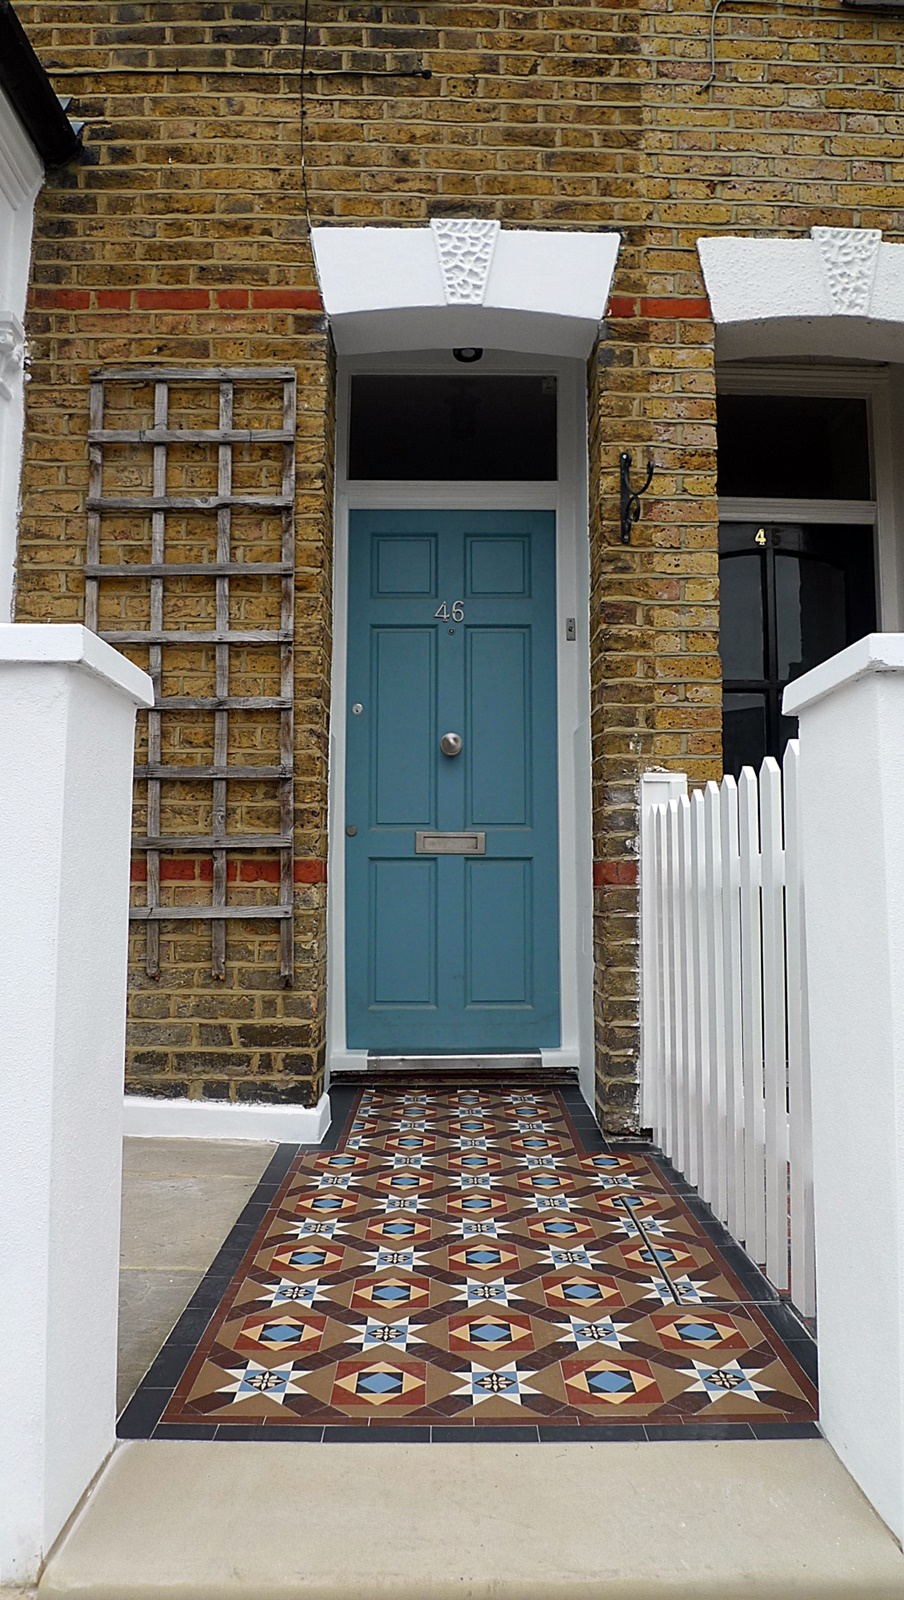 victorian mosaic london tile path multi colour encaustic yorkstone garden wall front picket fence earlsfield balham clapham battersea london